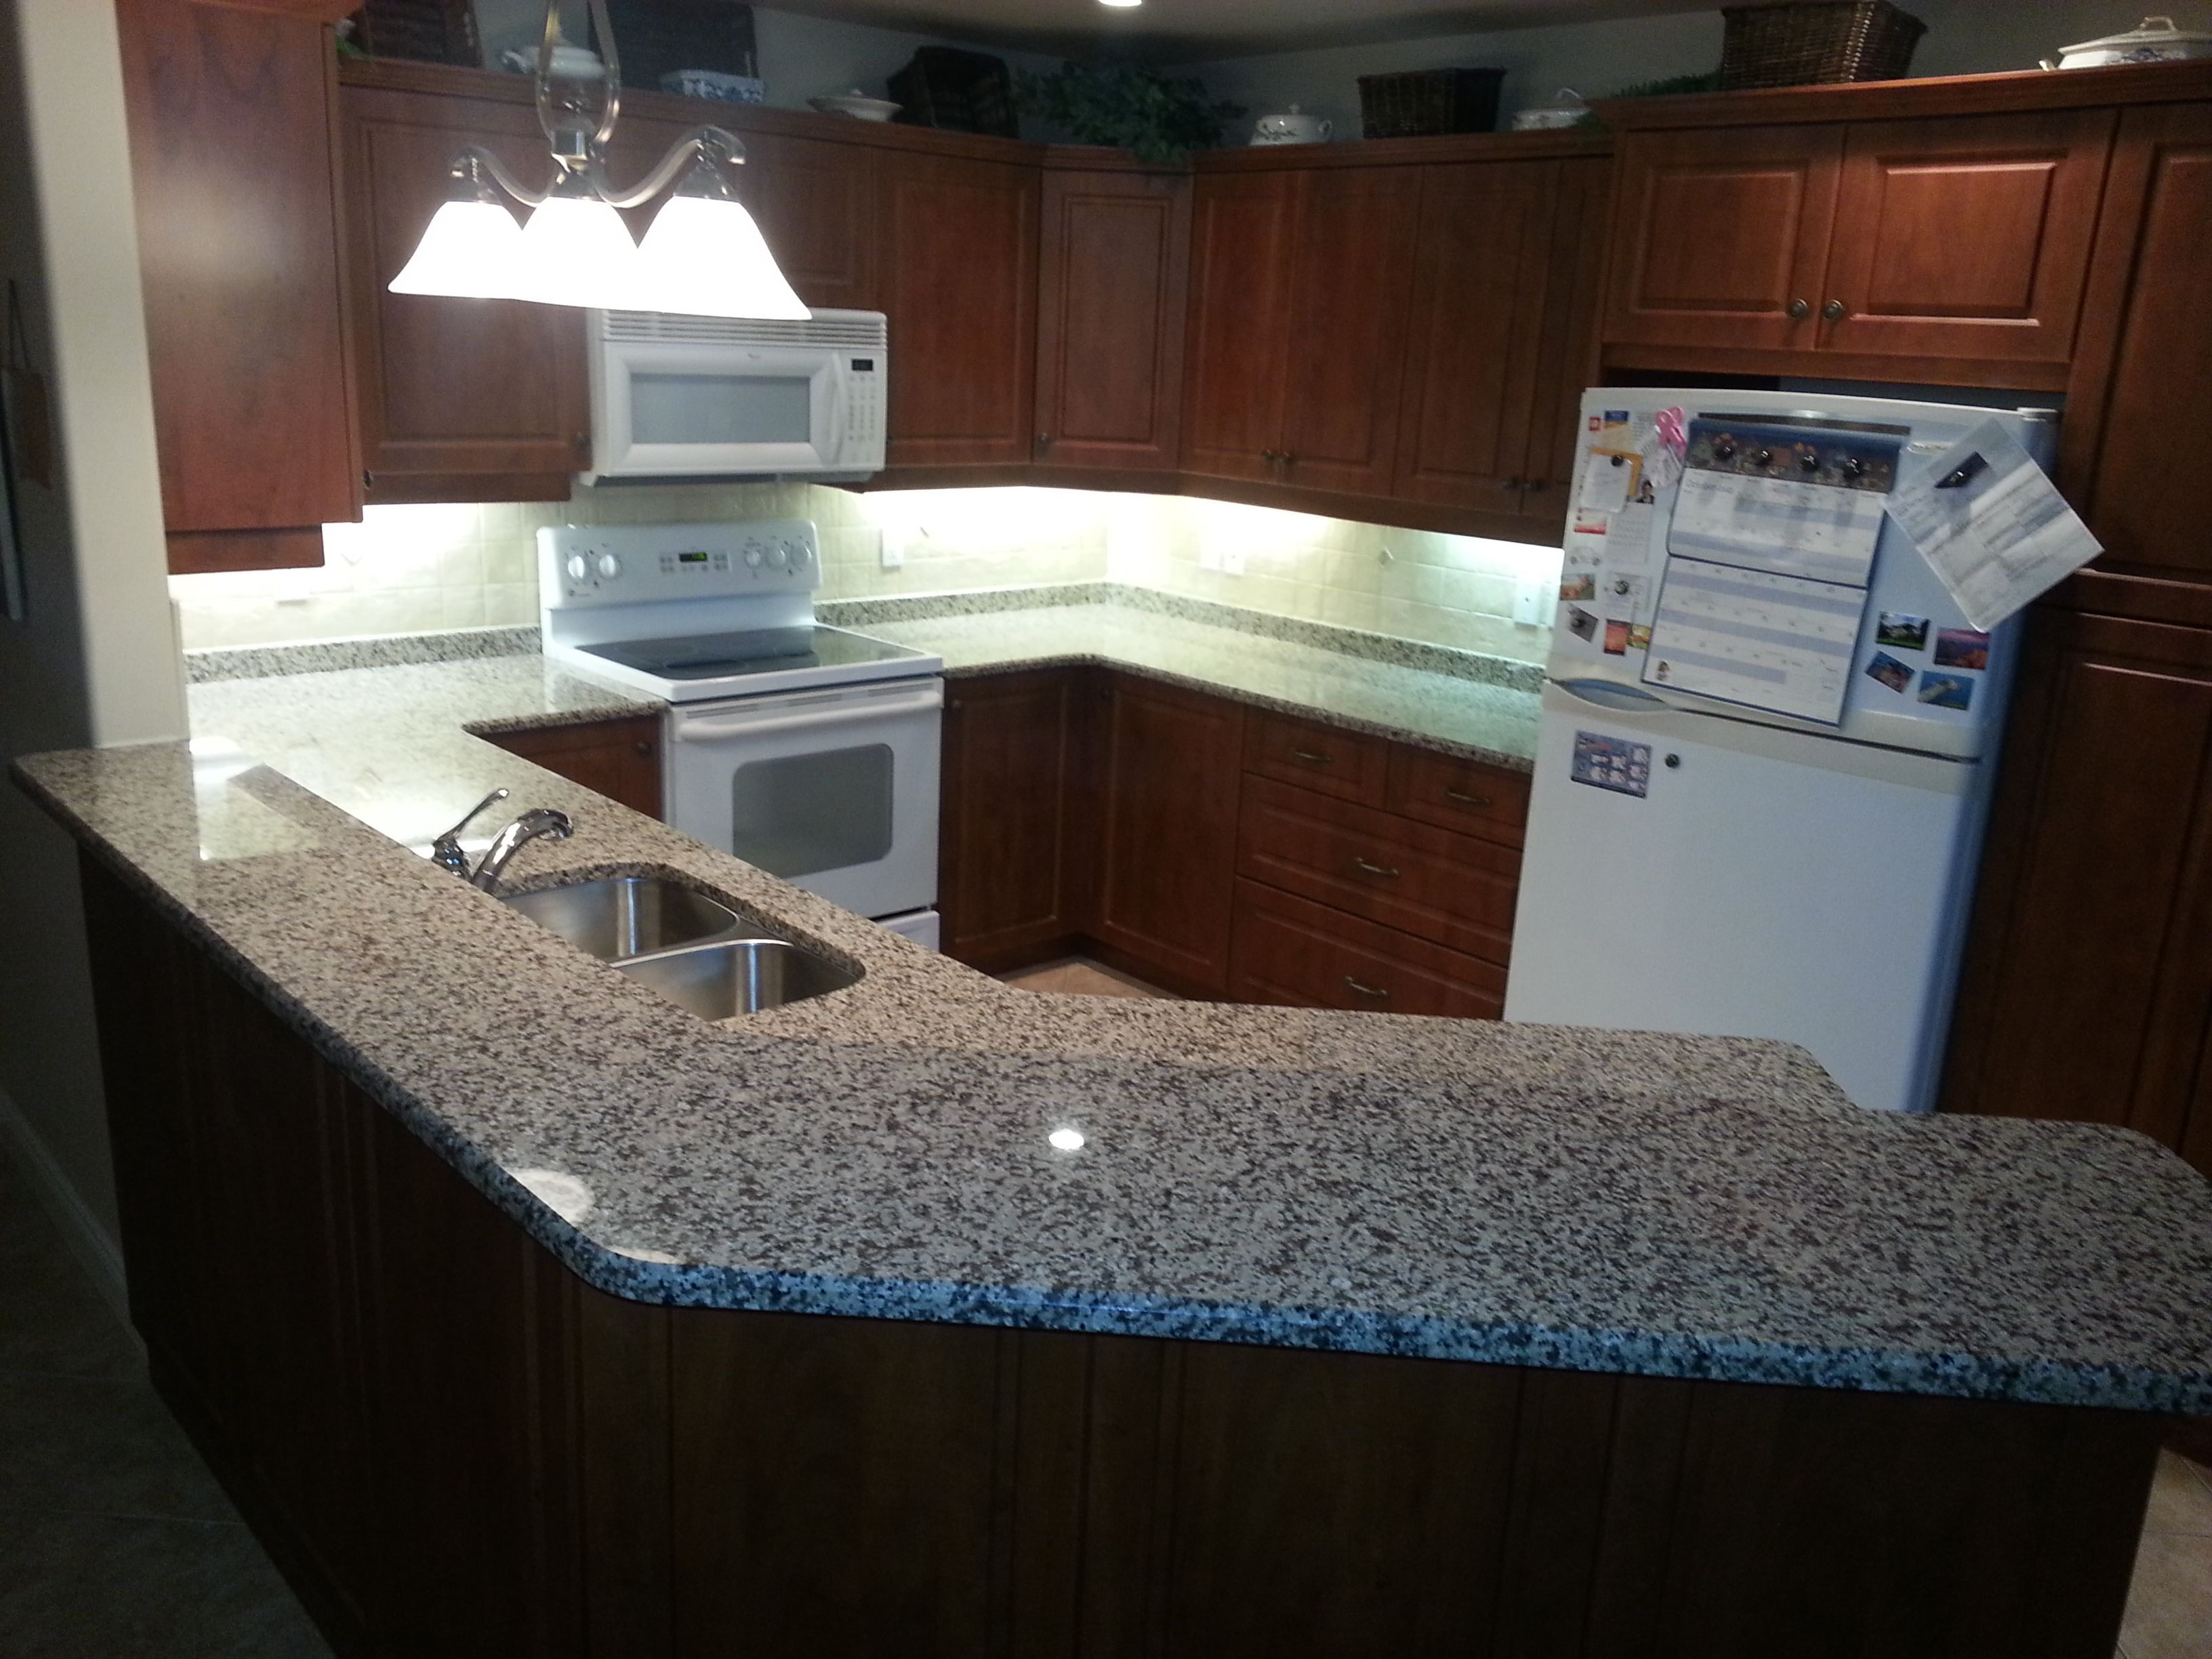 Bianco Sardo Granite Countertops With Raised Bar